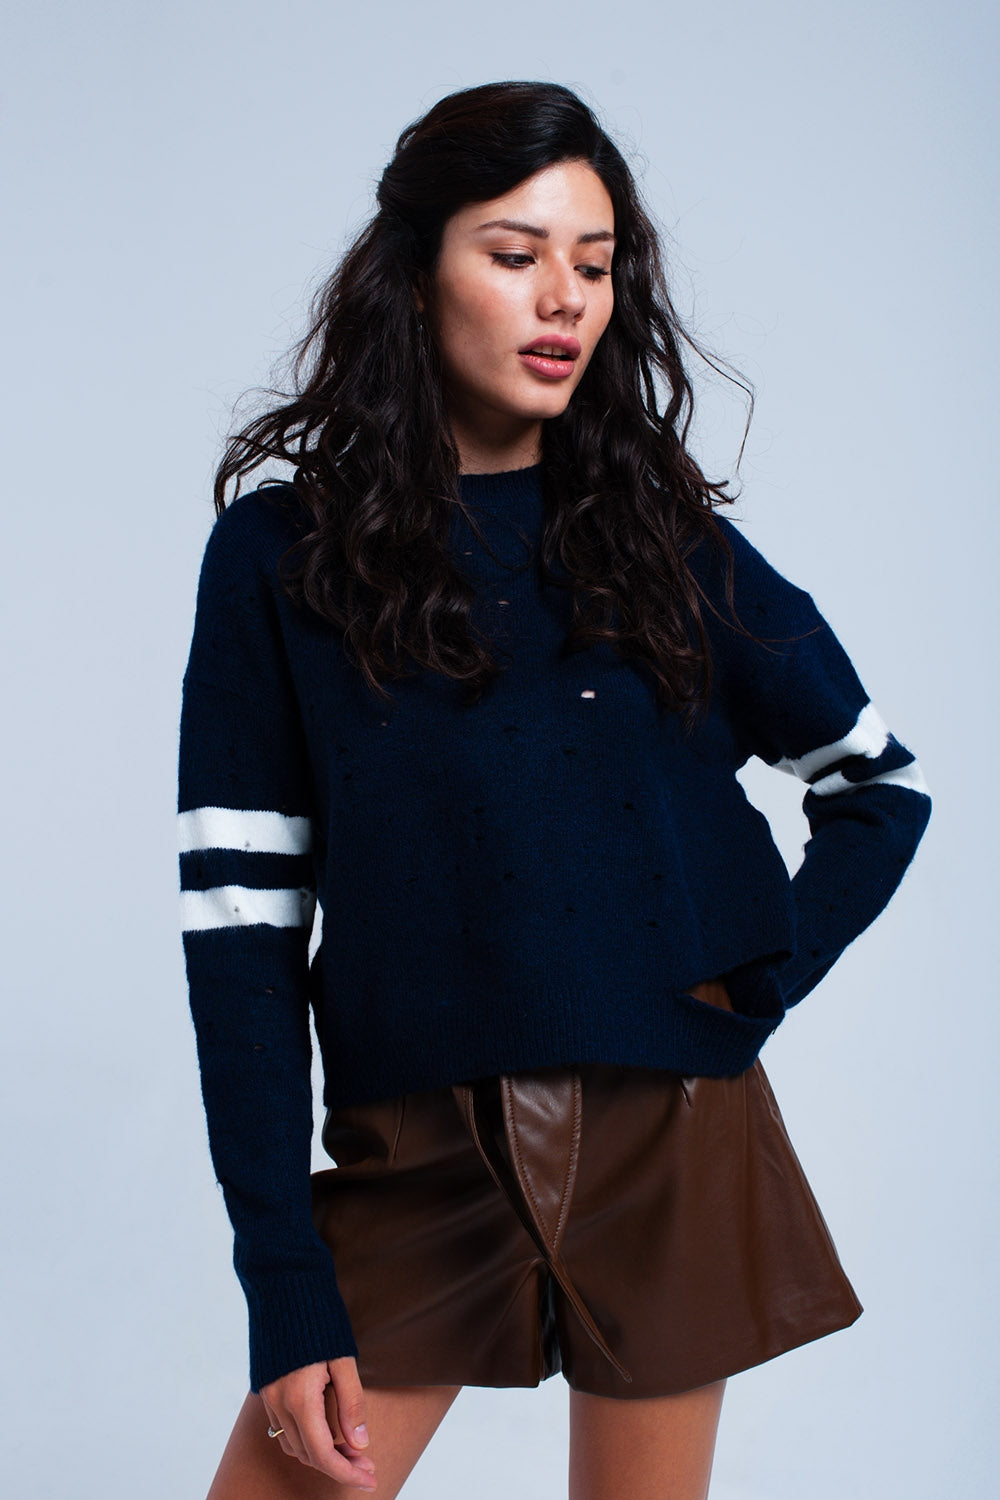 Navy Sweater With Openwork-Women - Apparel - Sweaters - Pull Over-Product Details Navy openwork sweater with two openings, one at the neck and another at the bottom left. There are white stripes at the elbows. Round neckline. Relaxed fit. Soft fabric.-Keyomi-Sook